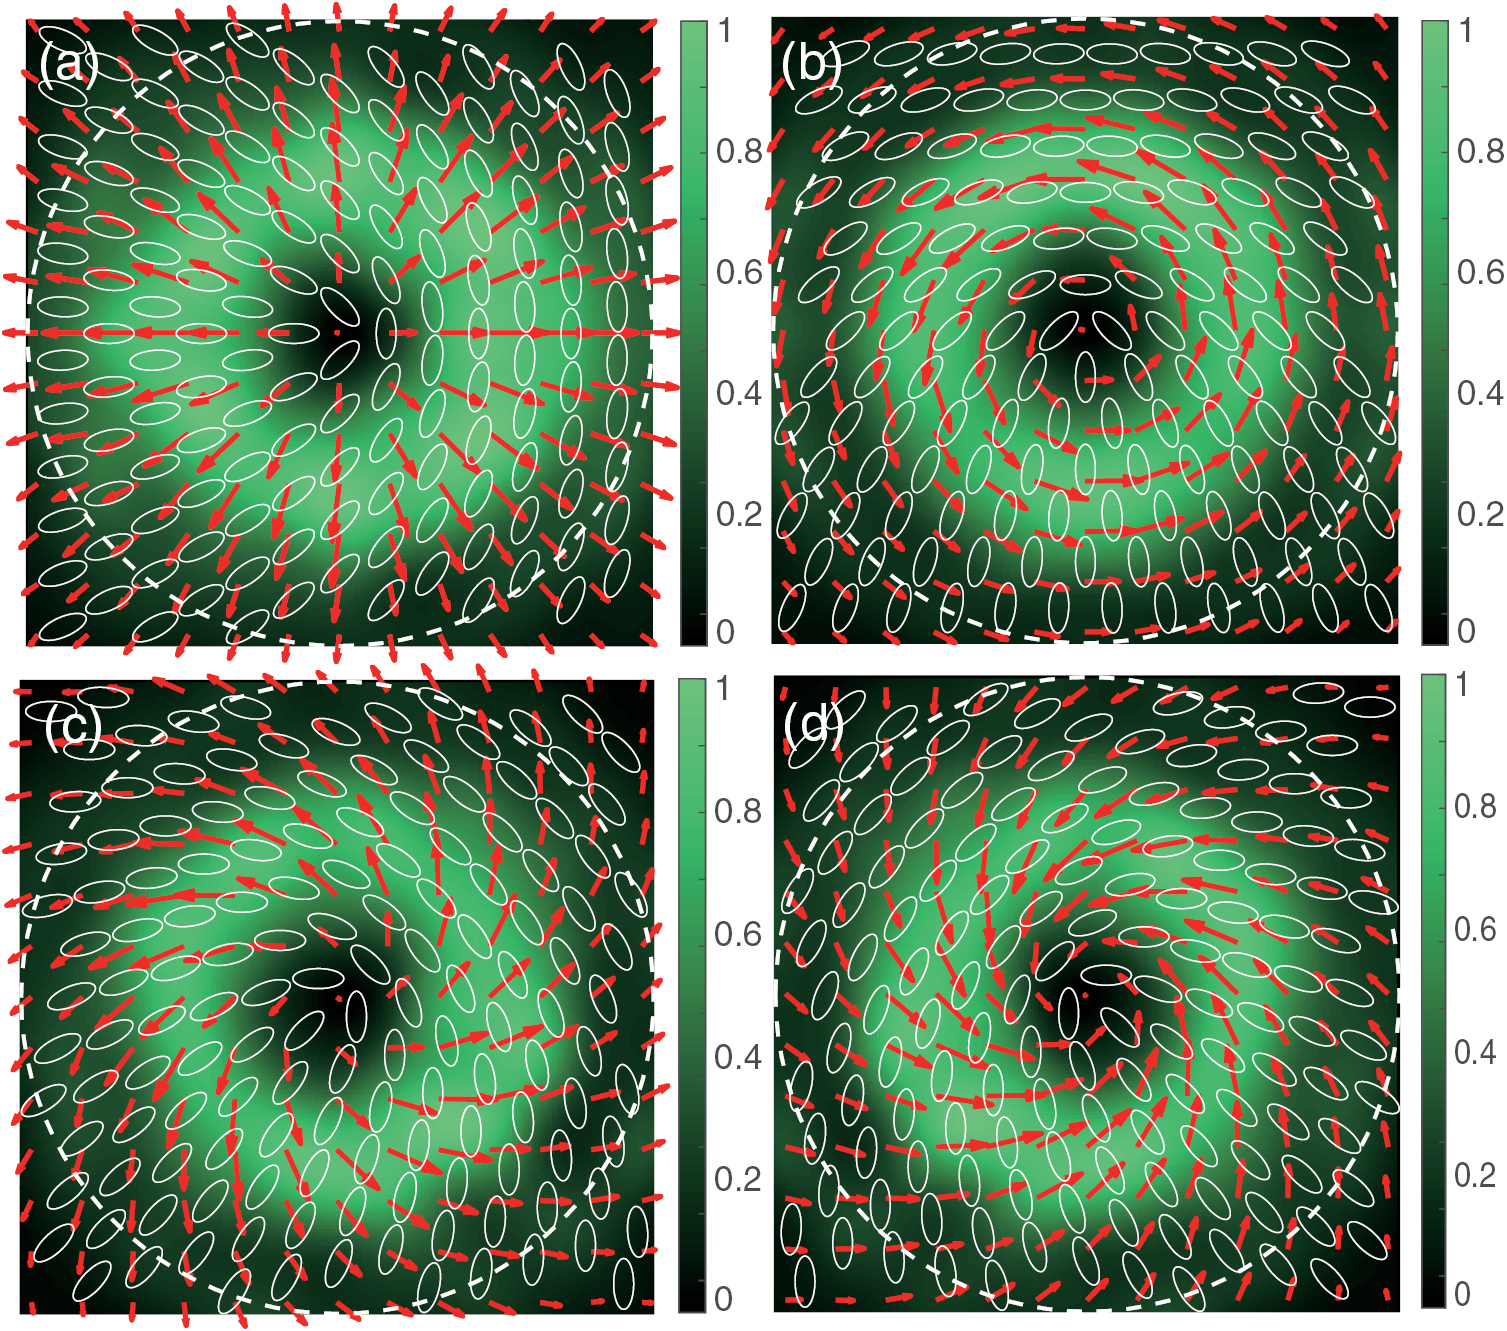 Polarization conversion by an all-dielectric metasurface of a linear polarization mode to vector modes a) radial polarization b) azimuthal polarization c,d) a superposition of radial and azimuthal modes. Image taken from Tongming Liu et al 2017 J. Phys. D: Appl. Phys. 50 334001, © IOP Publishing, All Rights Reserved.